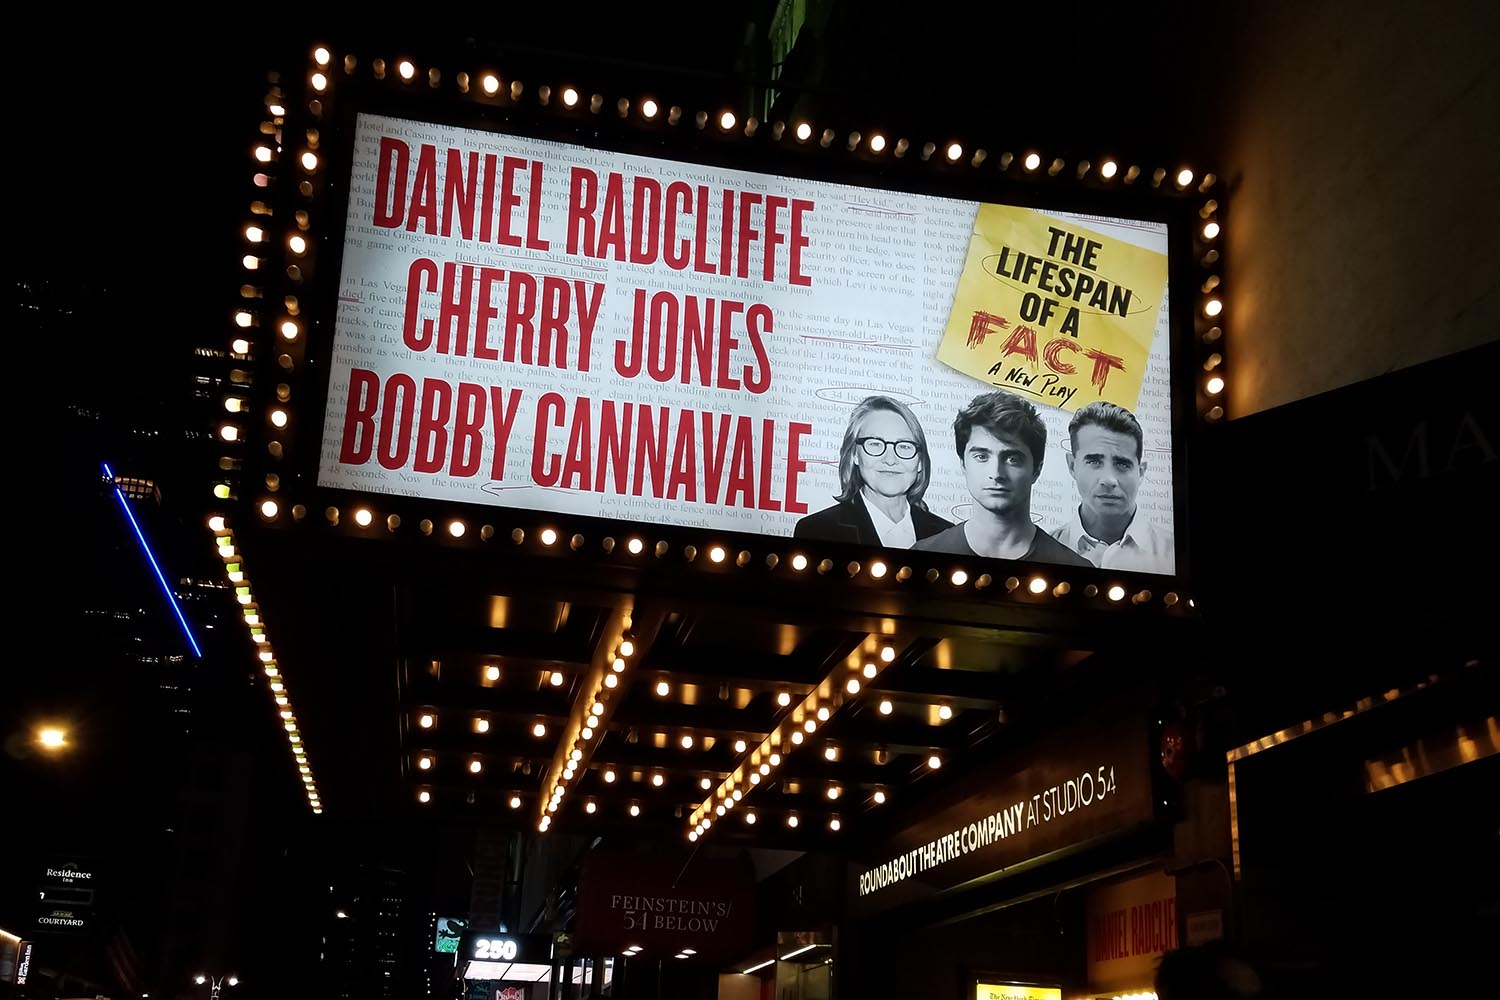 In Lifespan, actor Daniel Radcliffe is back on Broadway with Tony Award-winner Cherry Jones and Emmy Award-winner Bobby Cannavale as they take on the high-stakes world of publishing.